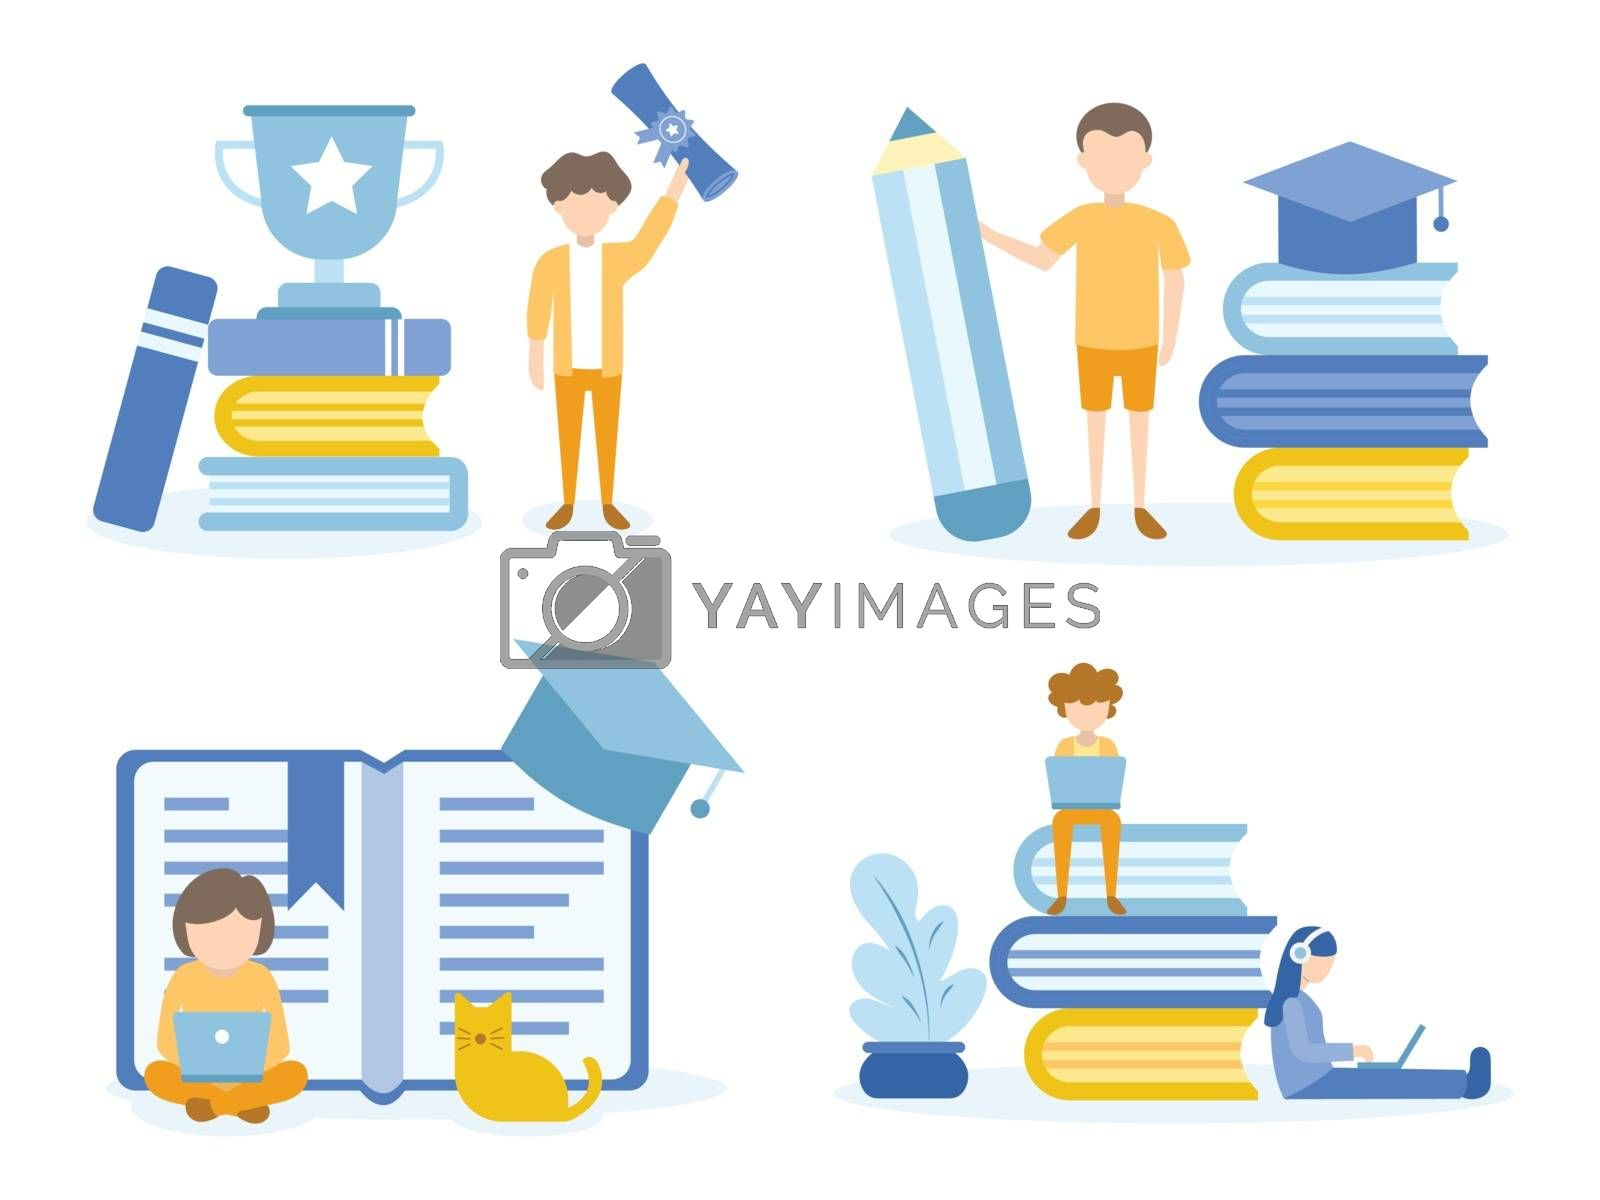 A Man is happy with graduation. Student doing homework with pencil and laptop from online course.  Concept Illustration of education for training, studying, e-learning, and online course.